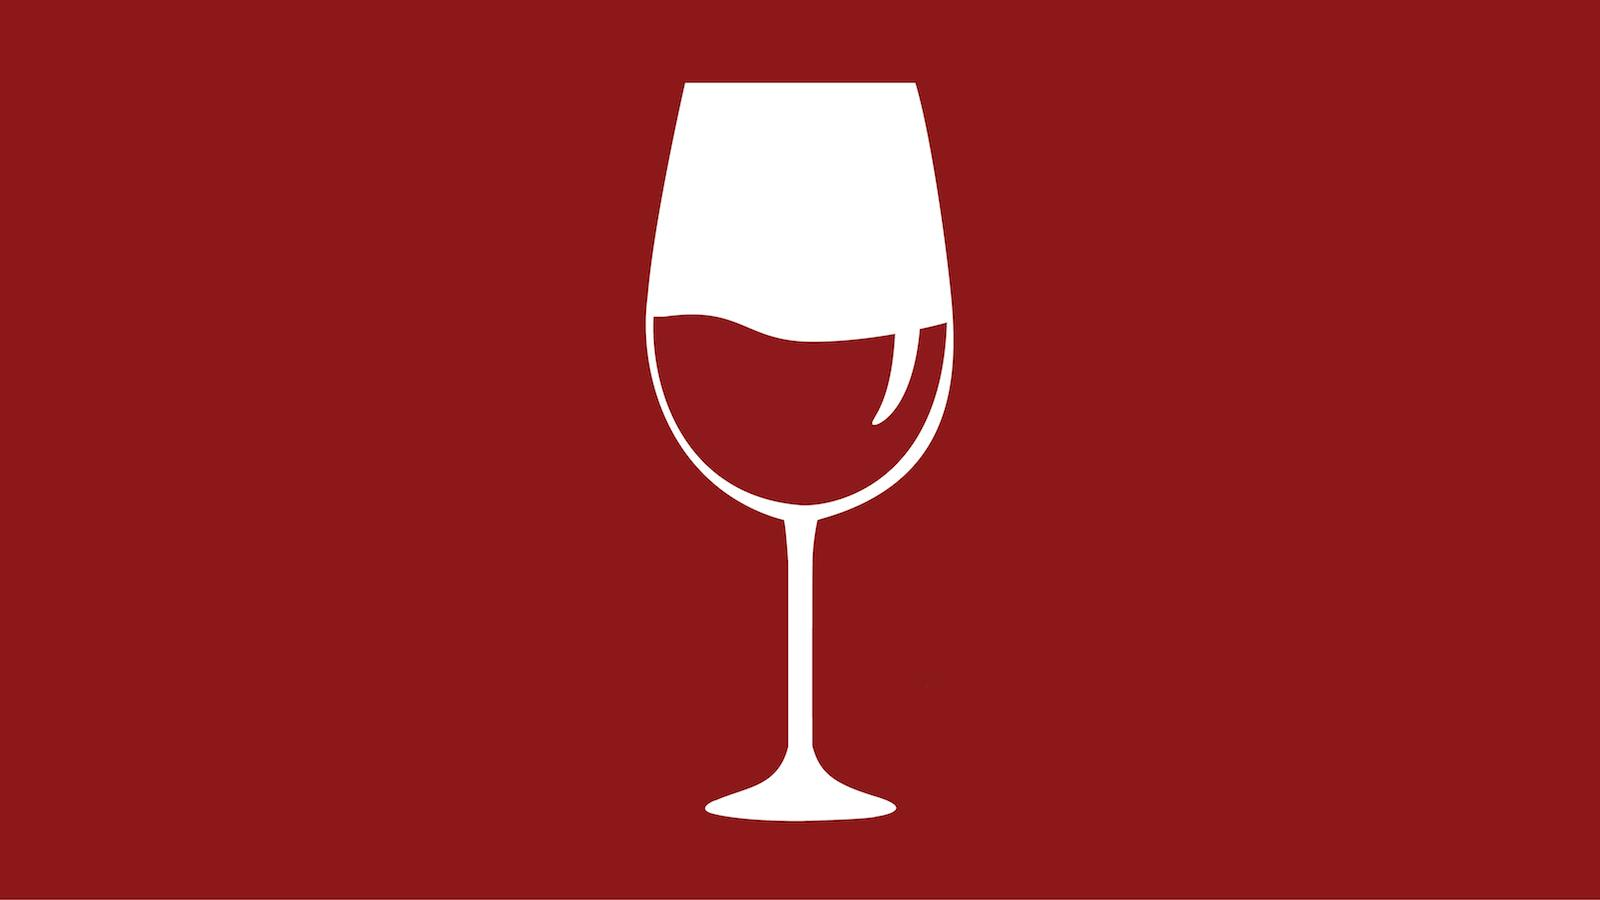 Which wines have the most tannins? How can you tell?